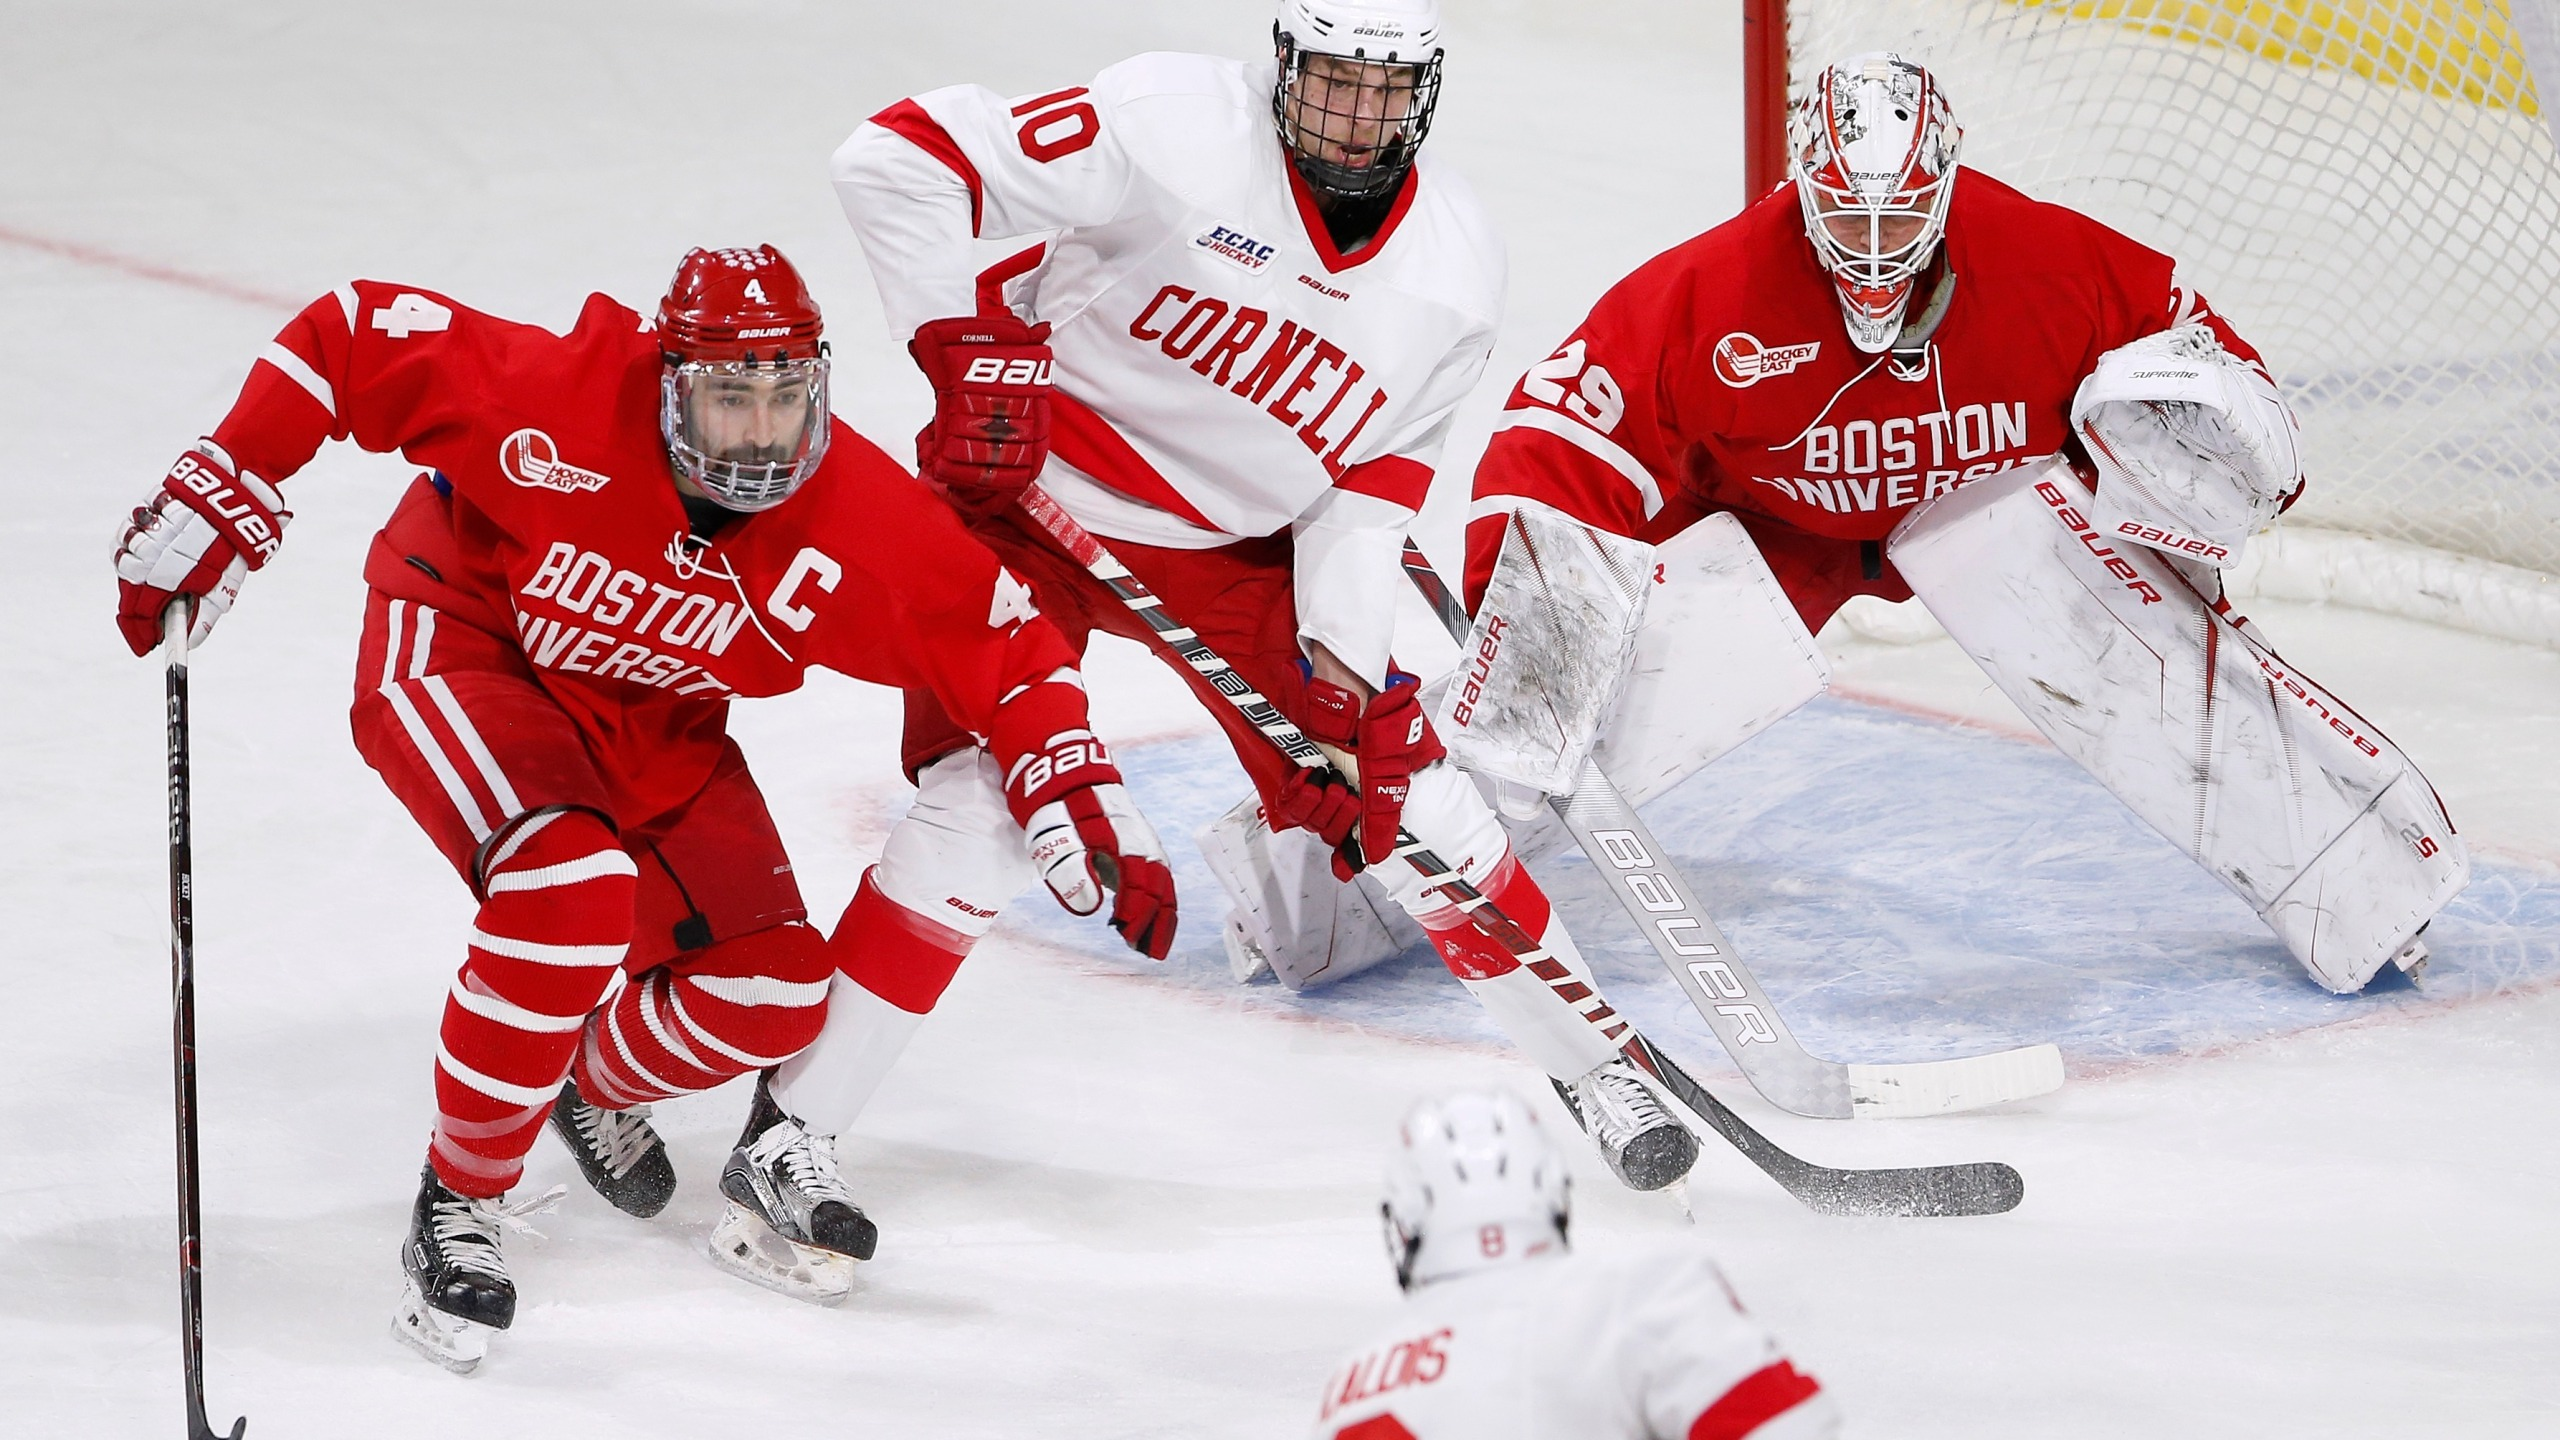 NCAA Cornell Boston Hockey_1529018046689